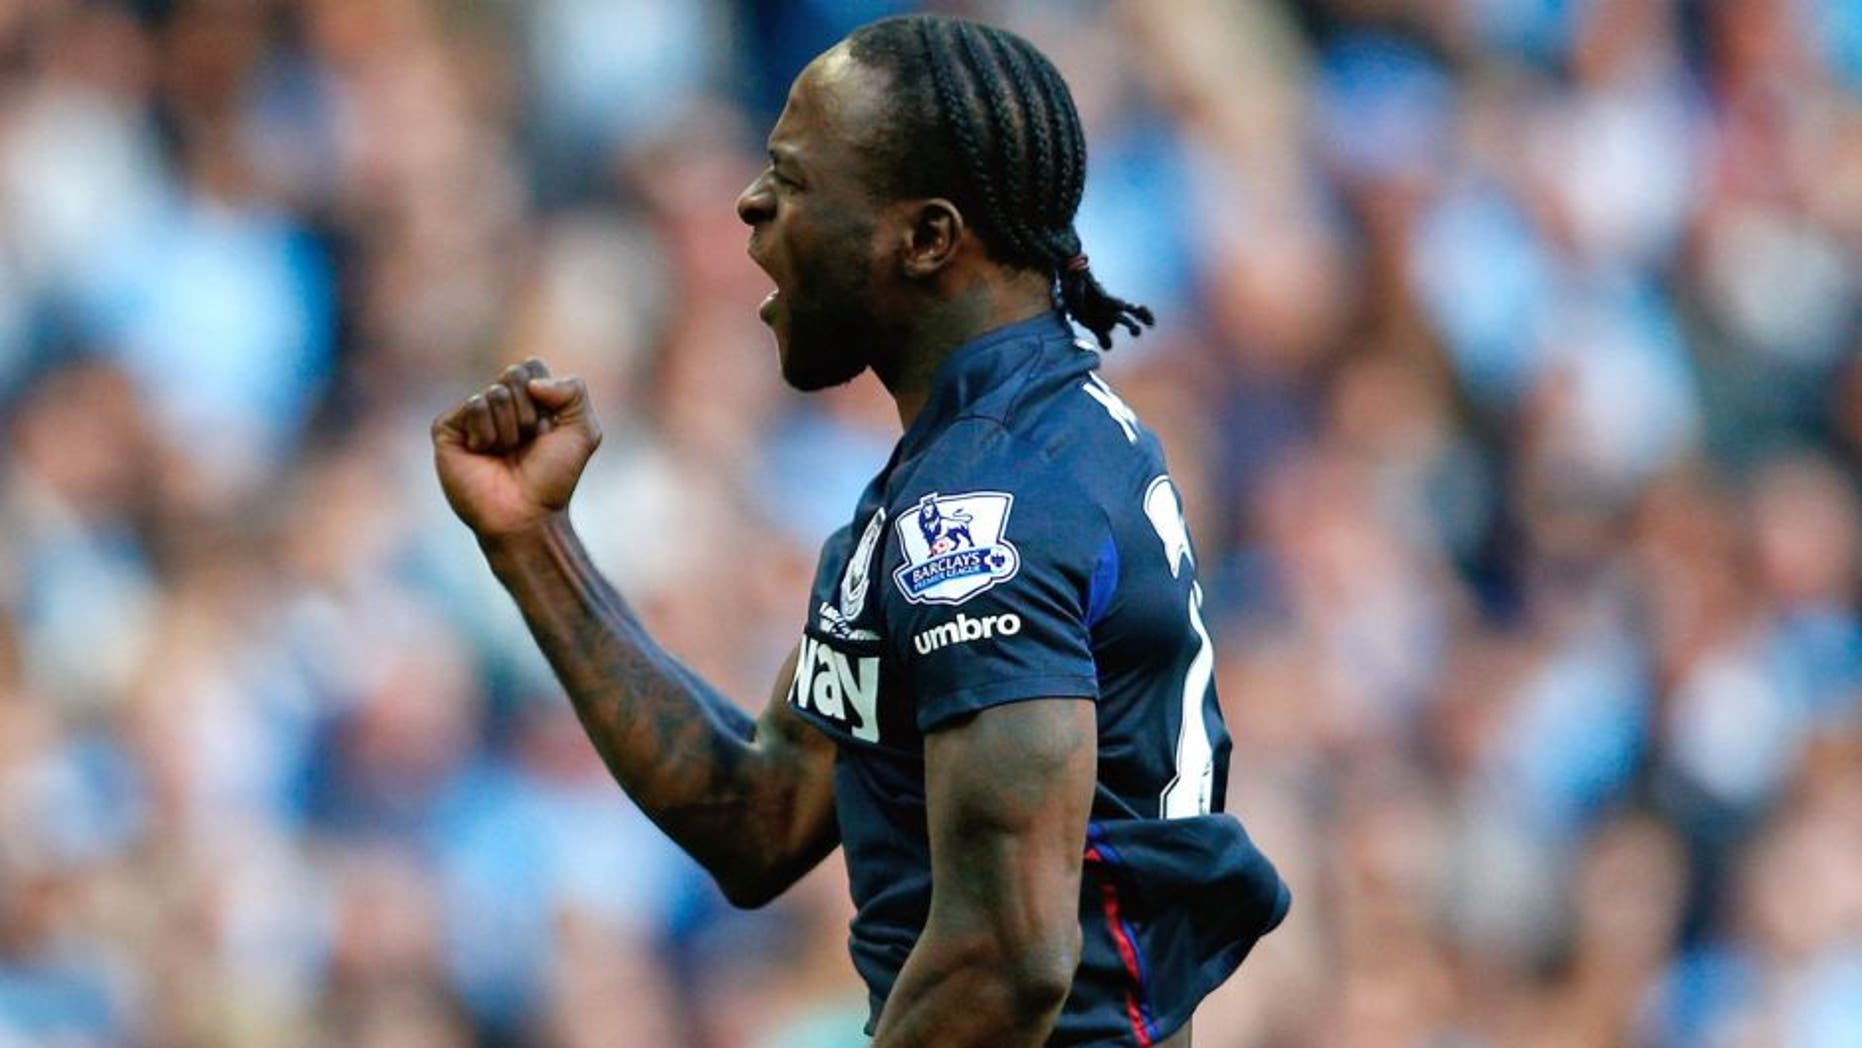 MANCHESTER, ENGLAND - SEPTEMBER 19: Victor Moses of West Ham United celebrates scoring the opening goal during the Barclays Premier League match between Manchester City and West Ham United at Etihad Stadium on September 19, 2015 in Manchester, United Kingdom. (Photo by Dean Mouhtaropoulos/Getty Images)